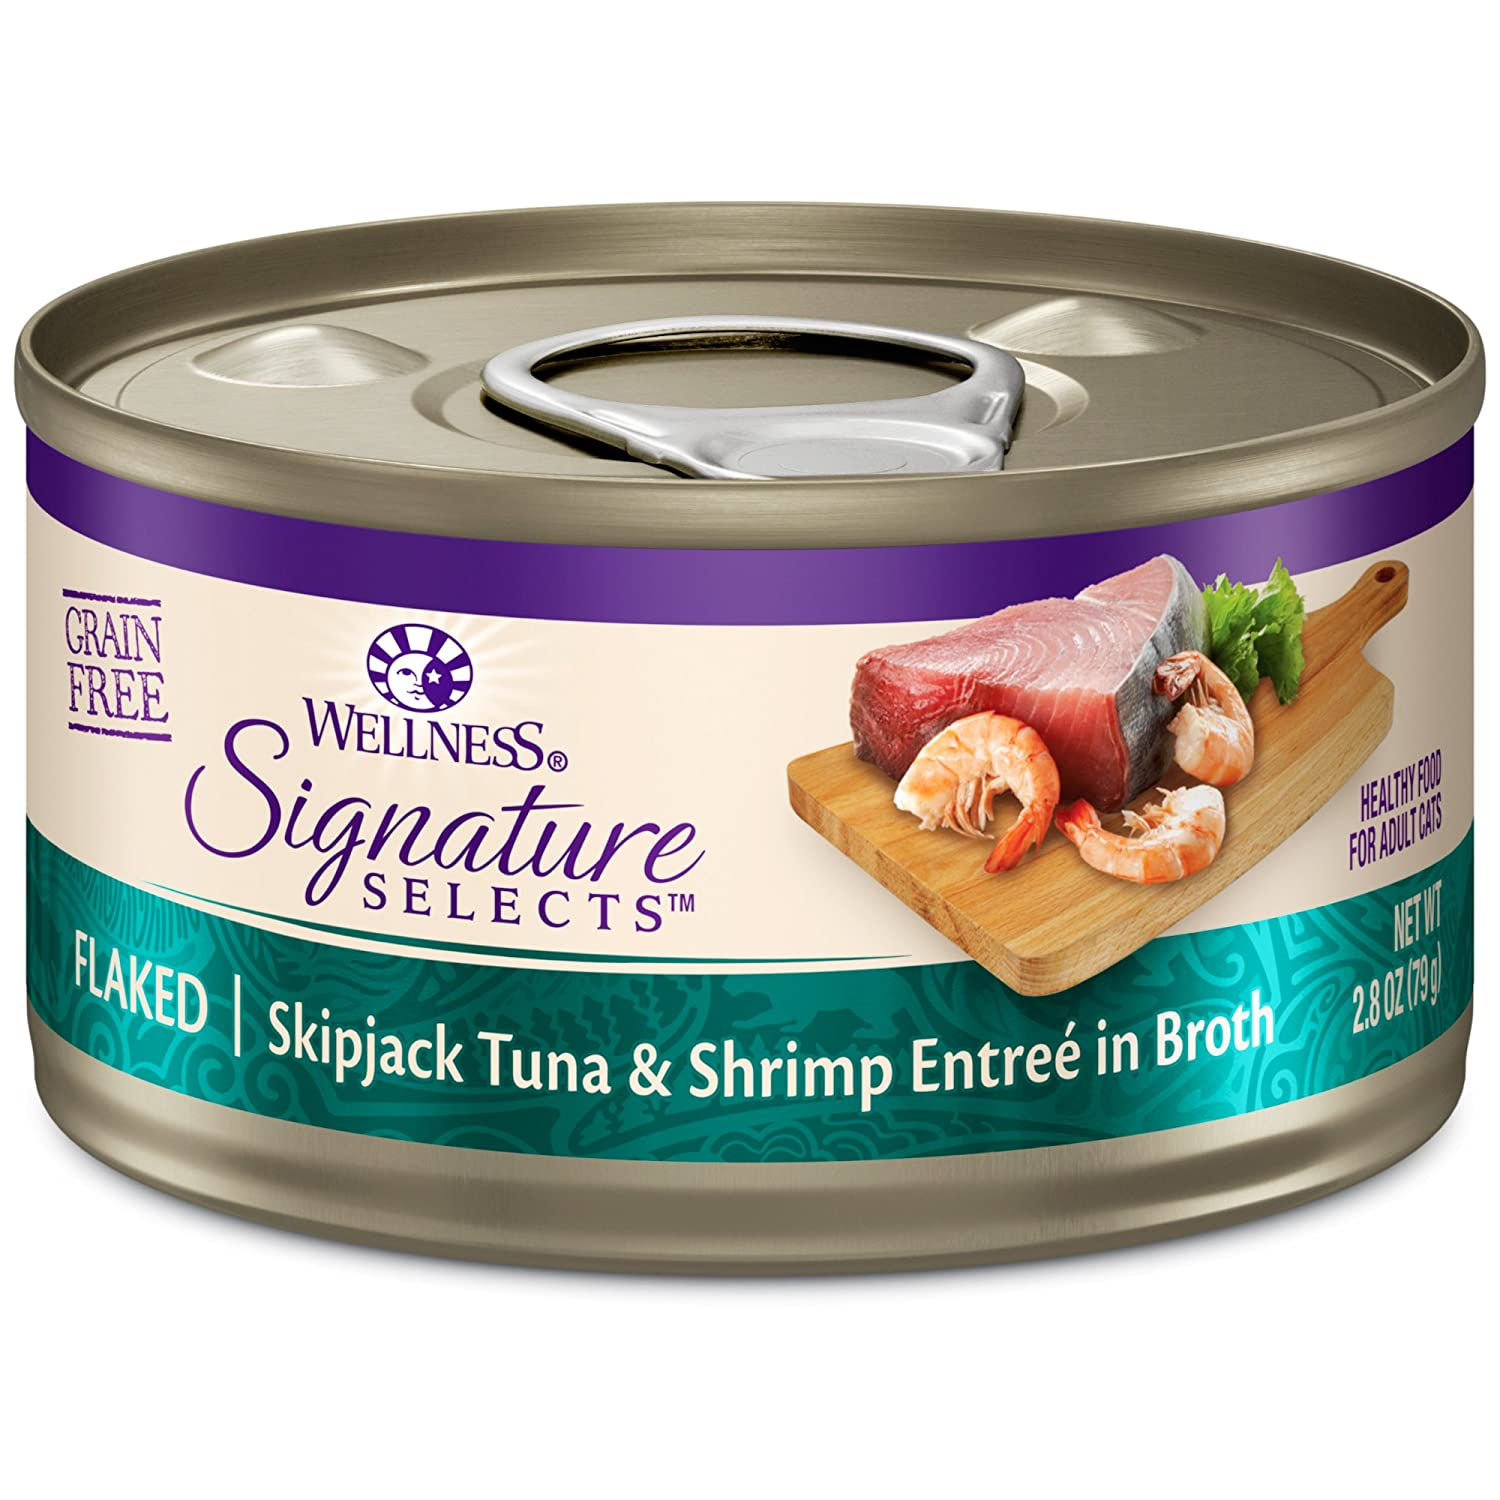 2.8-Ounce Can (Pack of 12) Wellness CORE Signature Selects Grain Free Wet Canned Cat Food, Flaked Skipjack Tuna & Shrimp, 2.8-Ounce (Pack of 12)